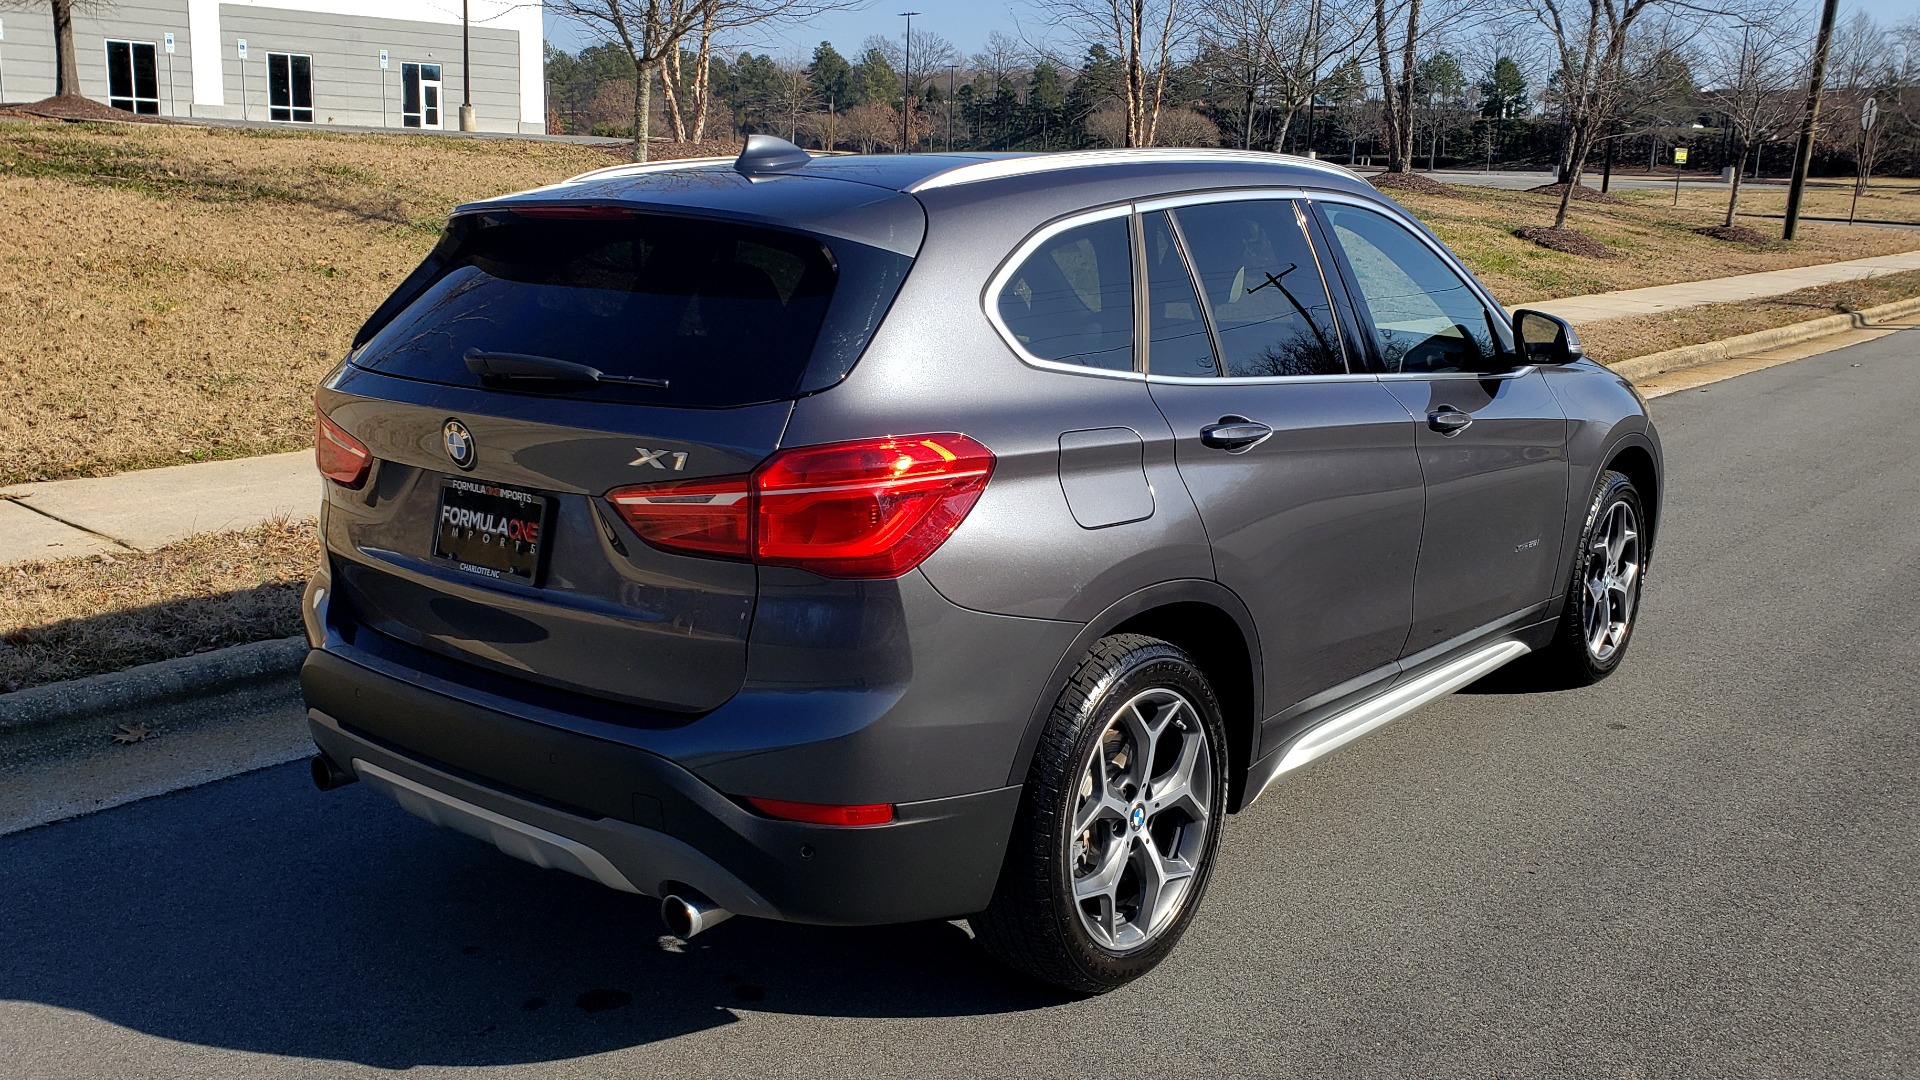 Used 2017 BMW X1 XDRIVE28I / PREM / TECH / DRVR ASST PLUS / COLD WTHR / REARVIEW for sale $26,995 at Formula Imports in Charlotte NC 28227 6